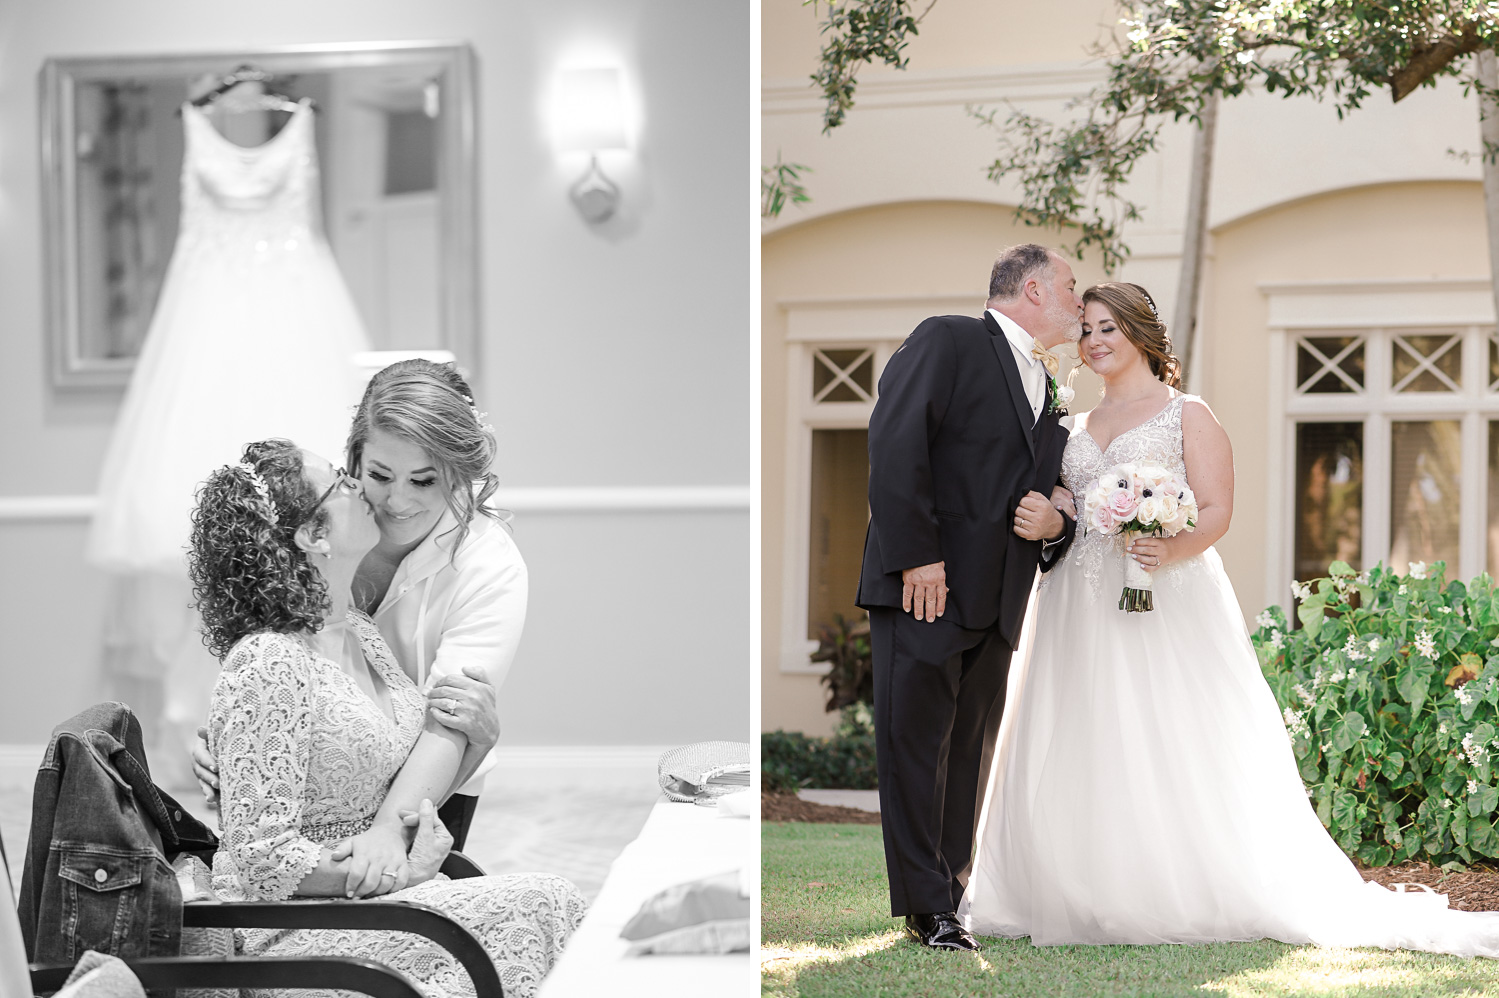 Family pictures at Romantic Outdoors Wedding at Woodfield Country Club in Boca Raton, Florida